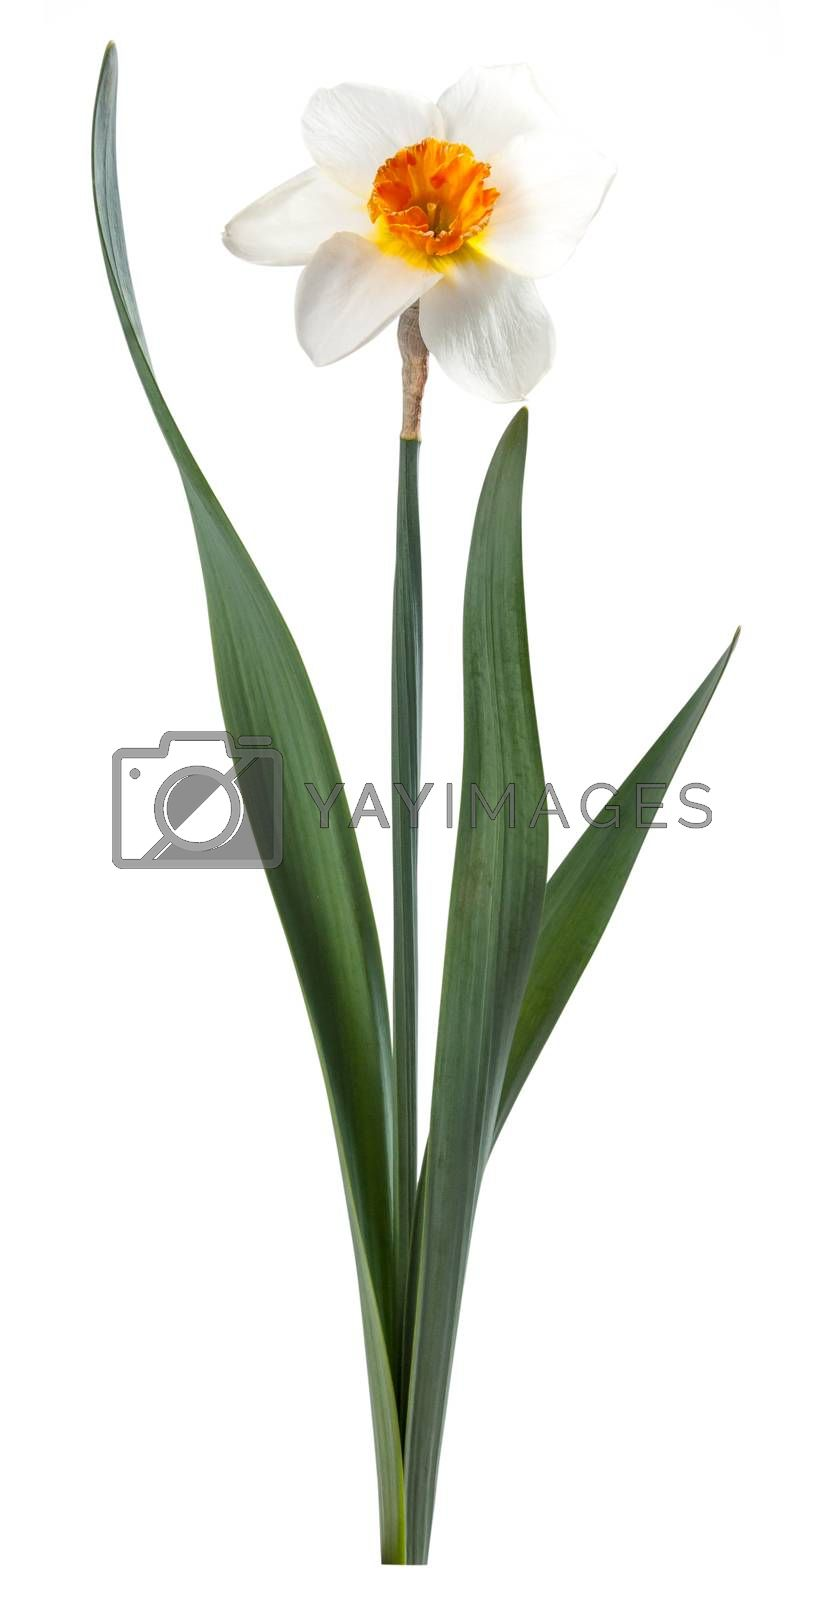 Narcissus flower isolated on white background, for design